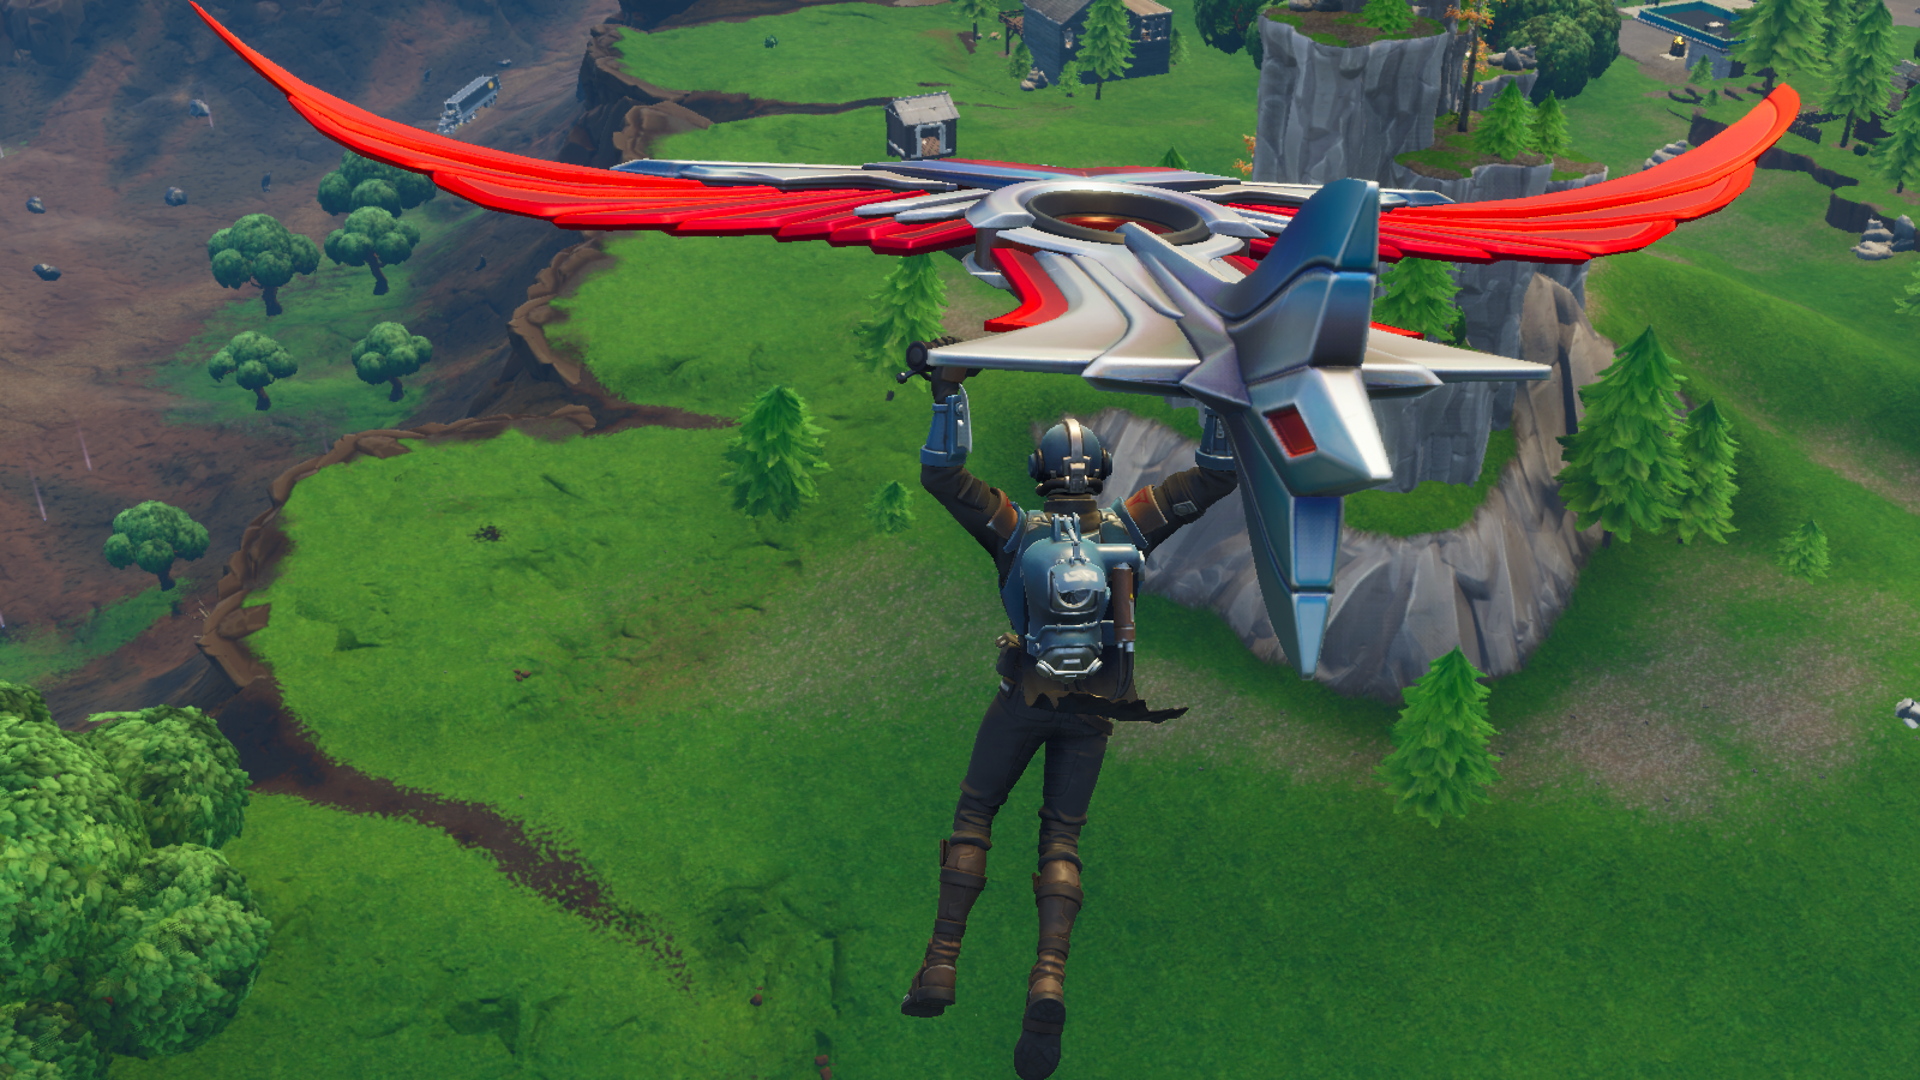 Fortnite adding bots and improving matchmaking to help players improve